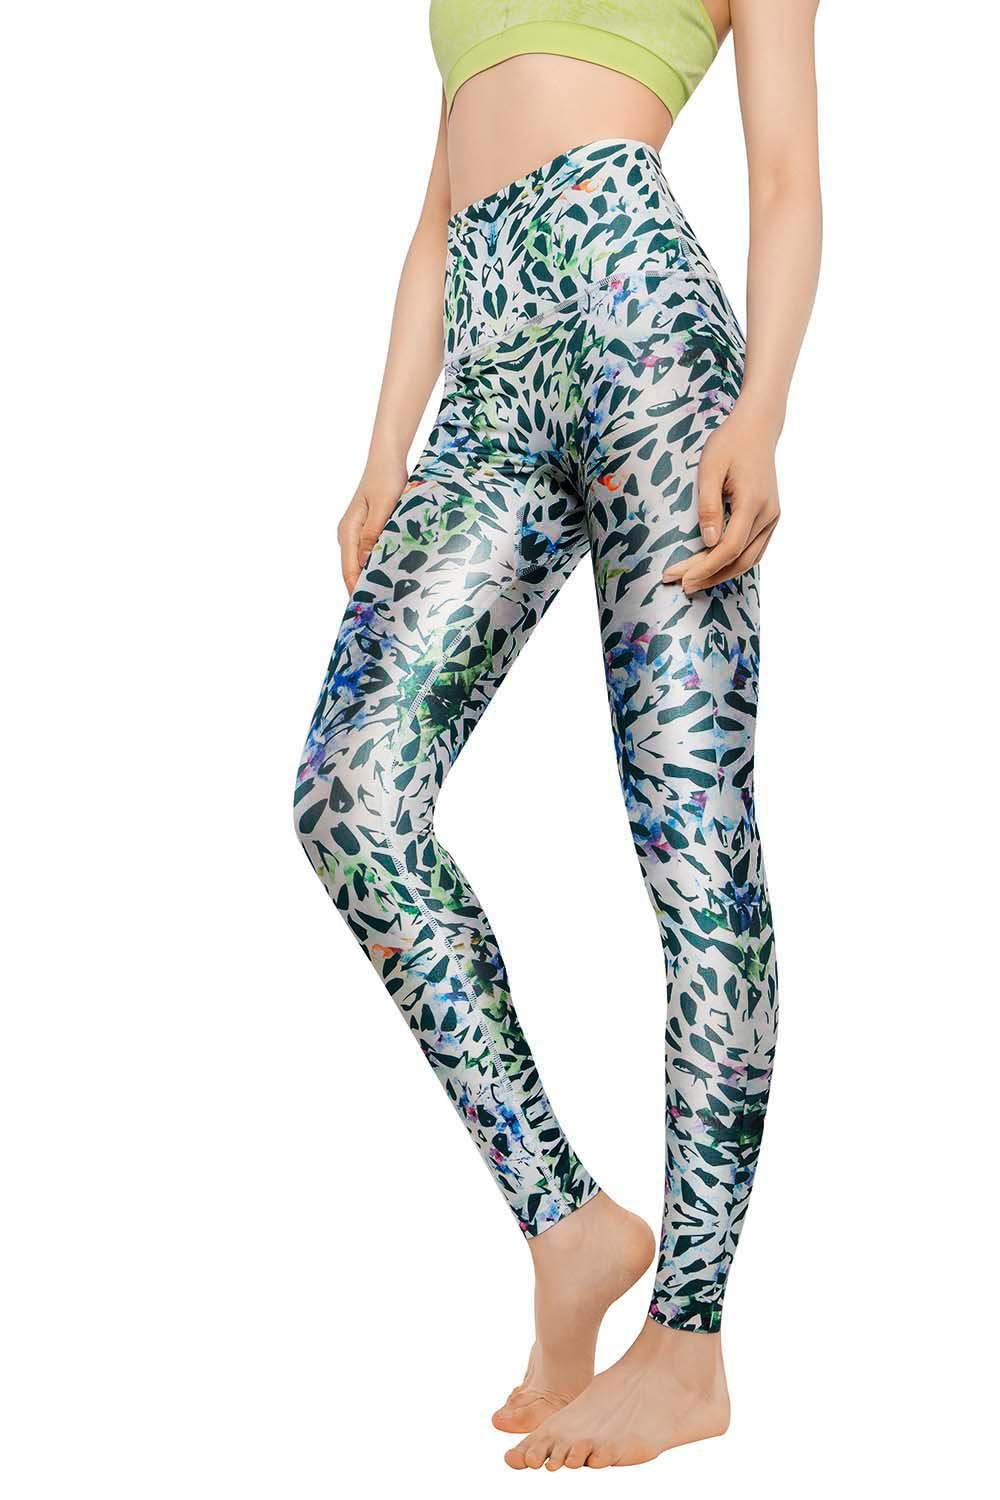 High Waist Colorful Athletic Pants for Workout +MD Womens Tummy Control Yoga Leggings with Hidden Pocket Running